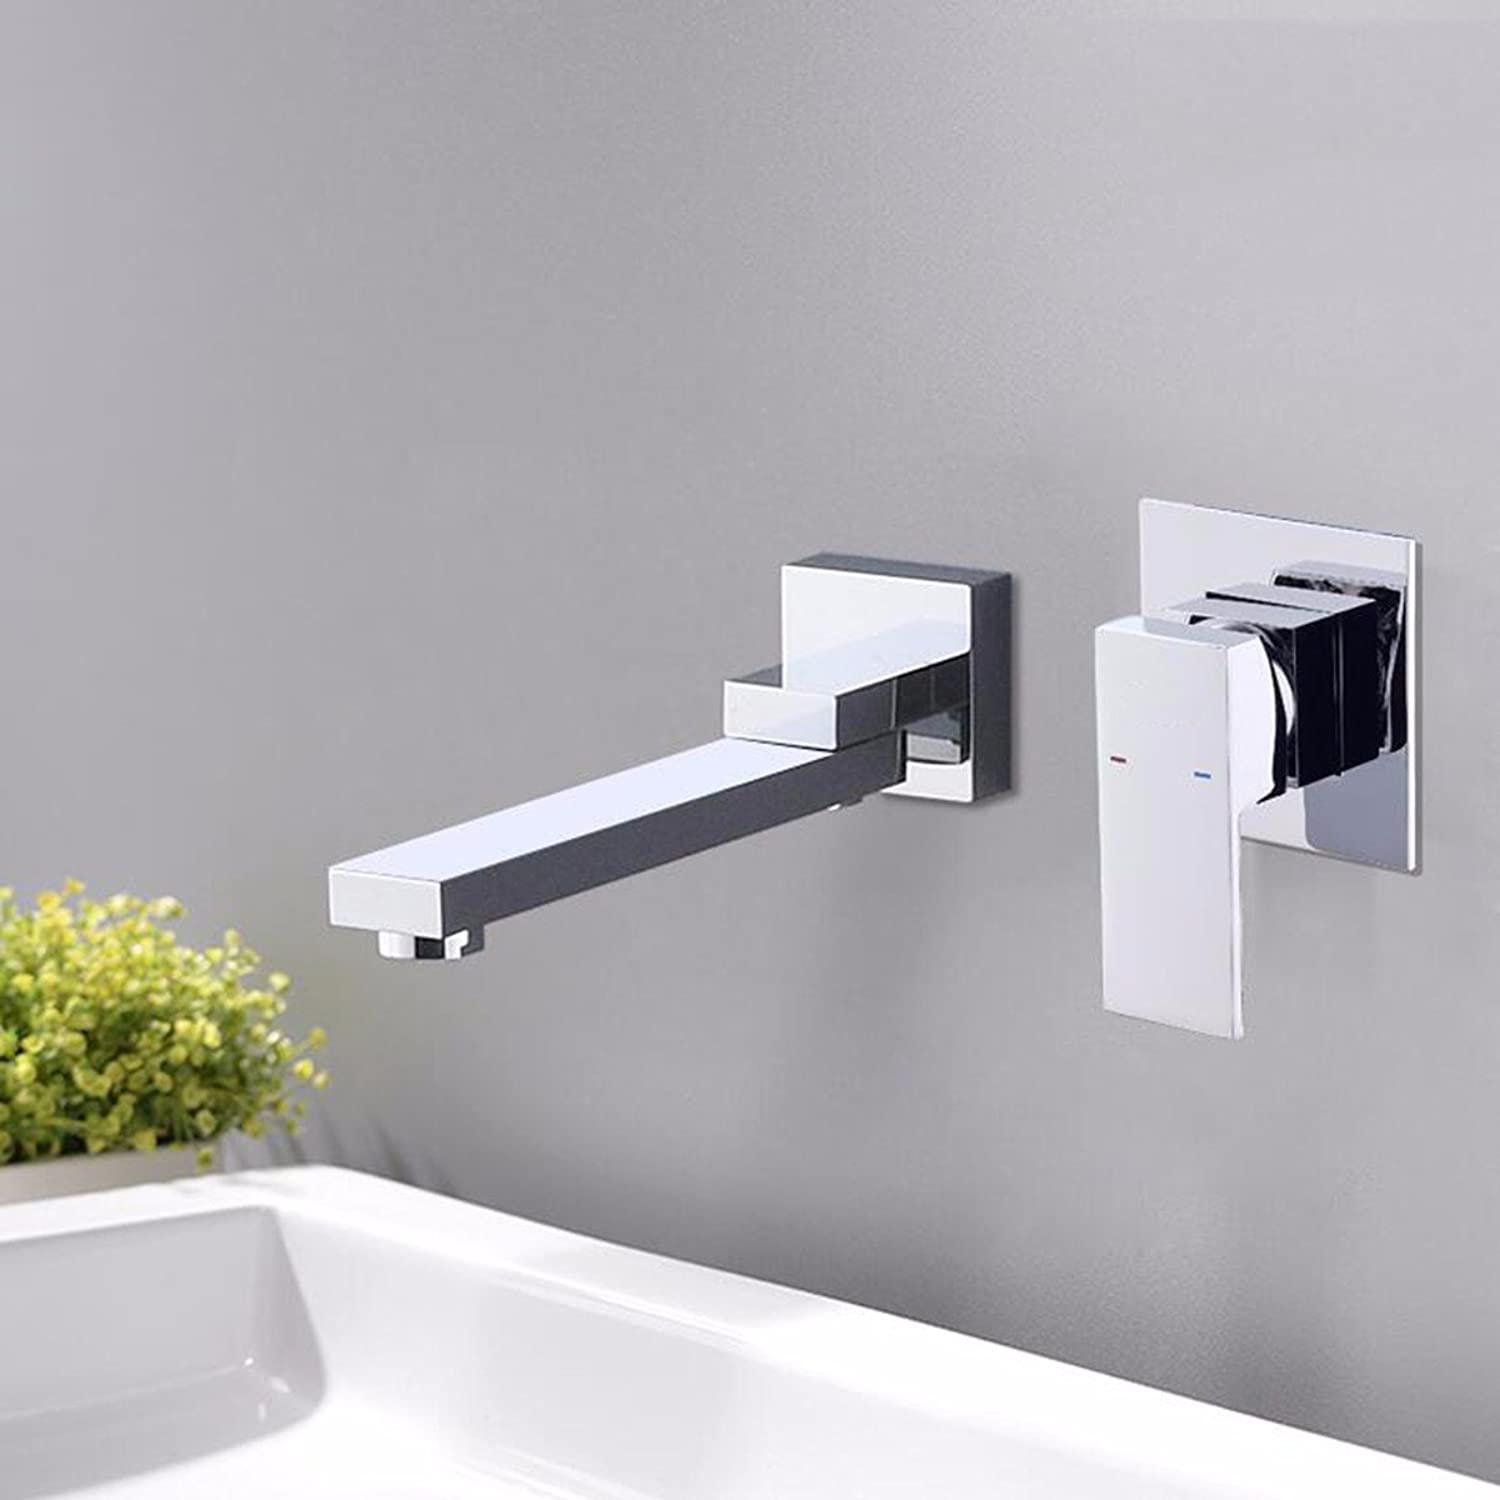 QPGGP-Basin Mixer Yaguang black embedded basin faucet, all copper in wall cold and hot water washbasin faucet,B